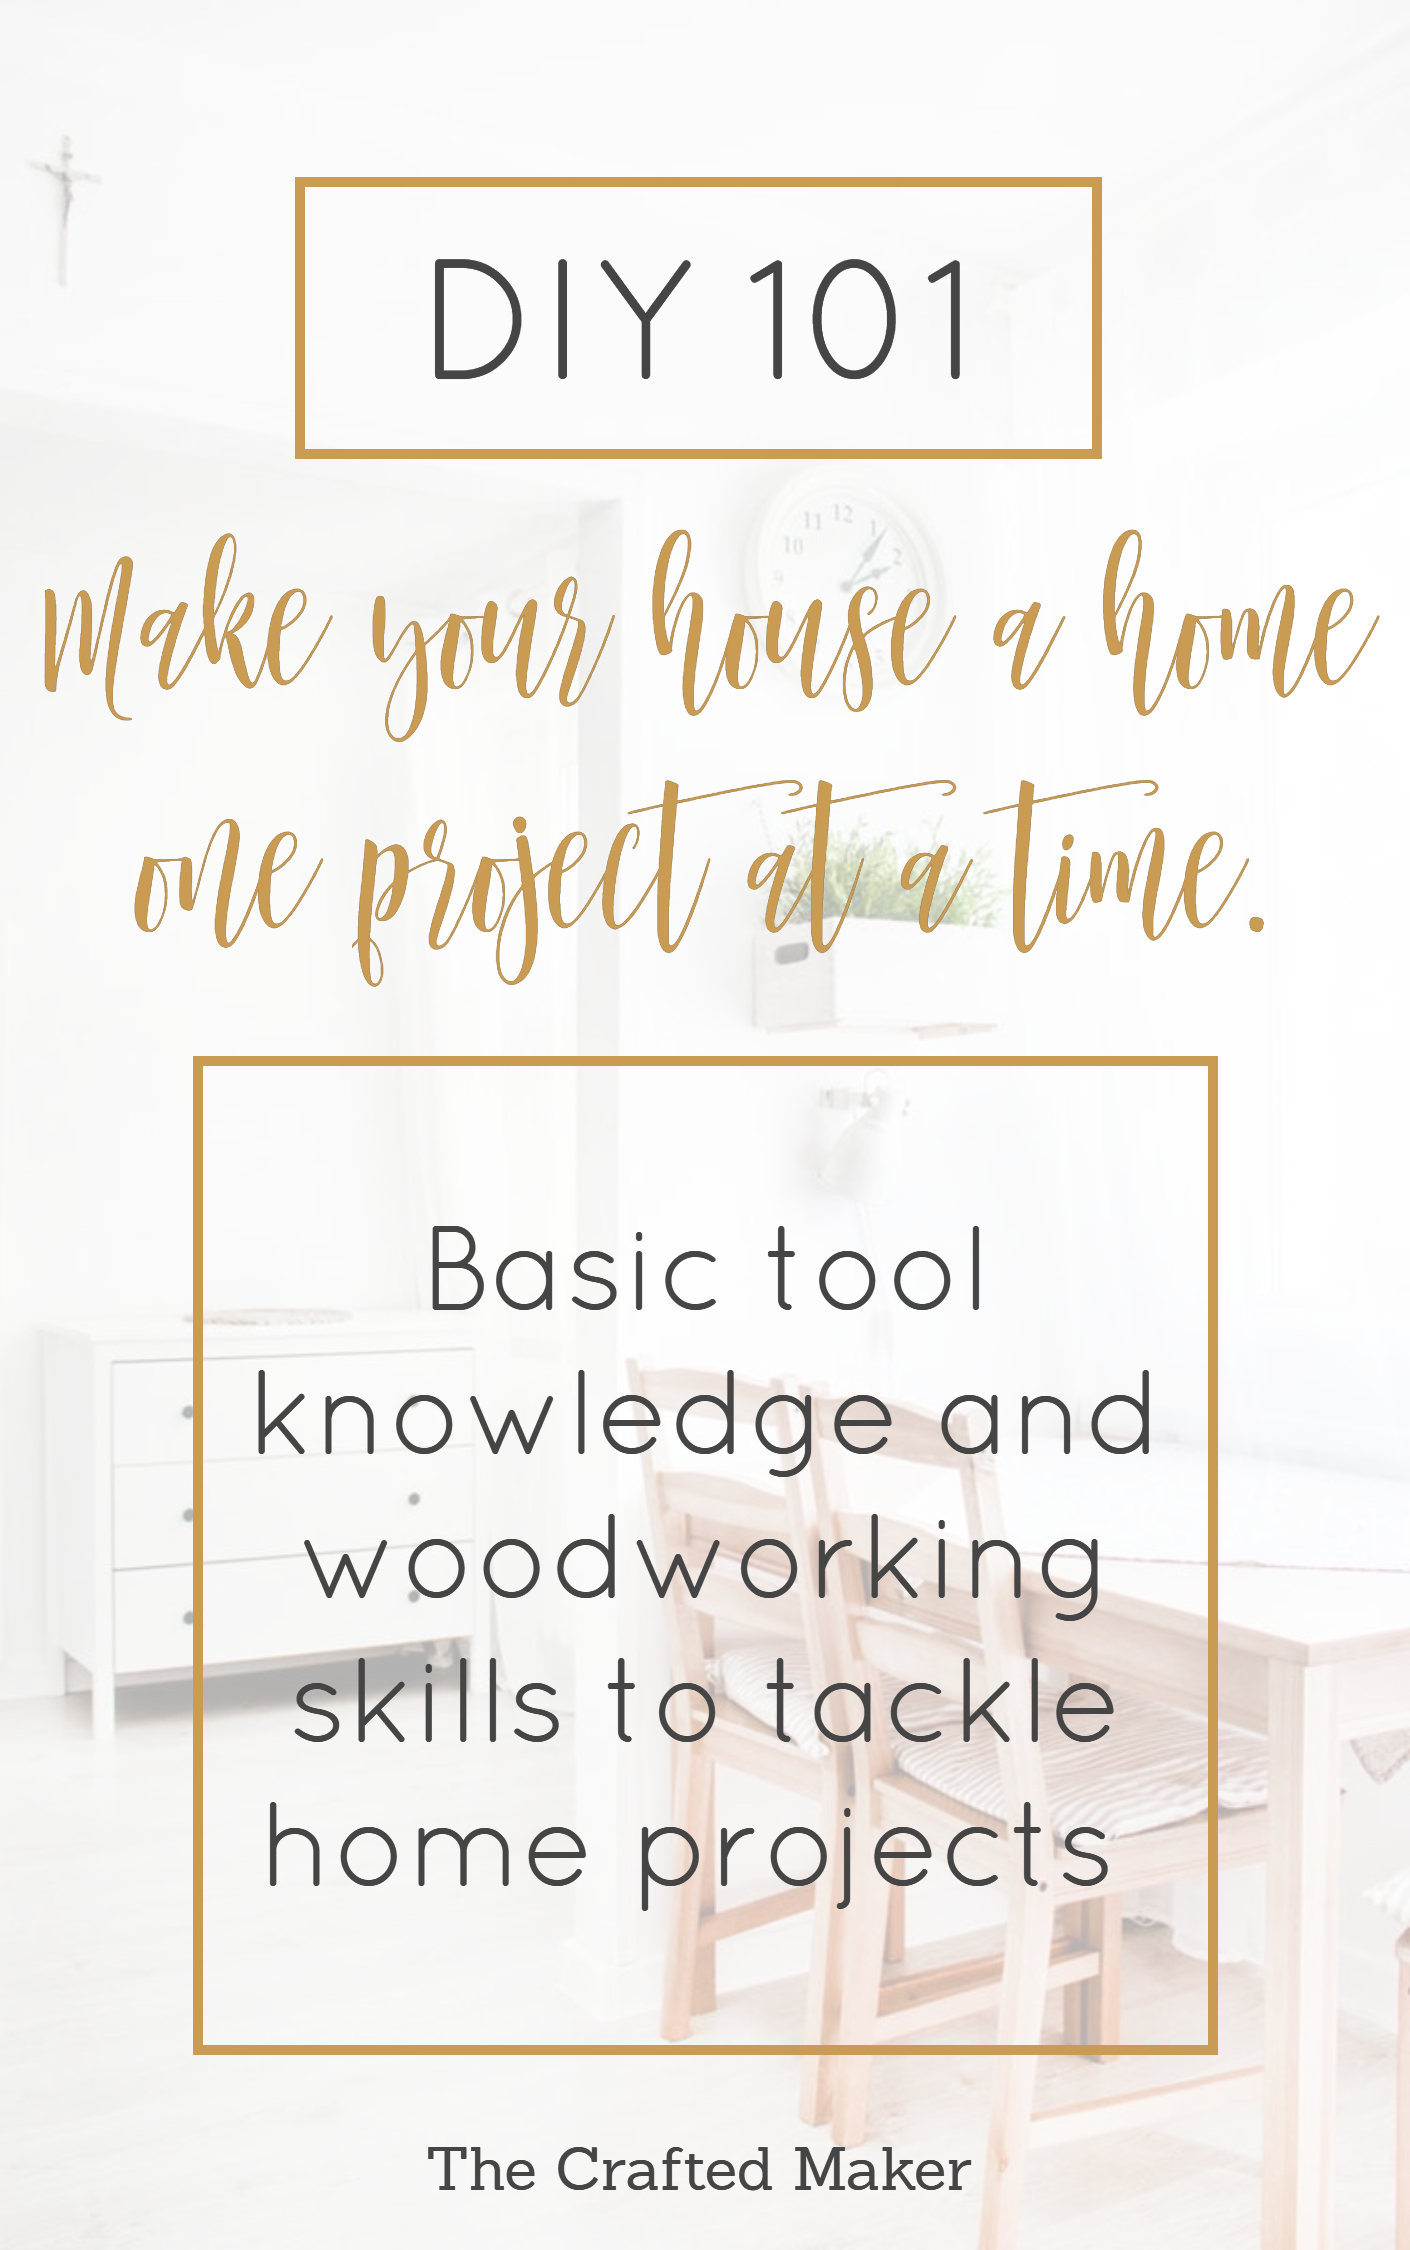 Starting any DIY project can sometimes seem like a lot to take on, but with the proper tools and know how, you can accomplish any project! Let's DIY!